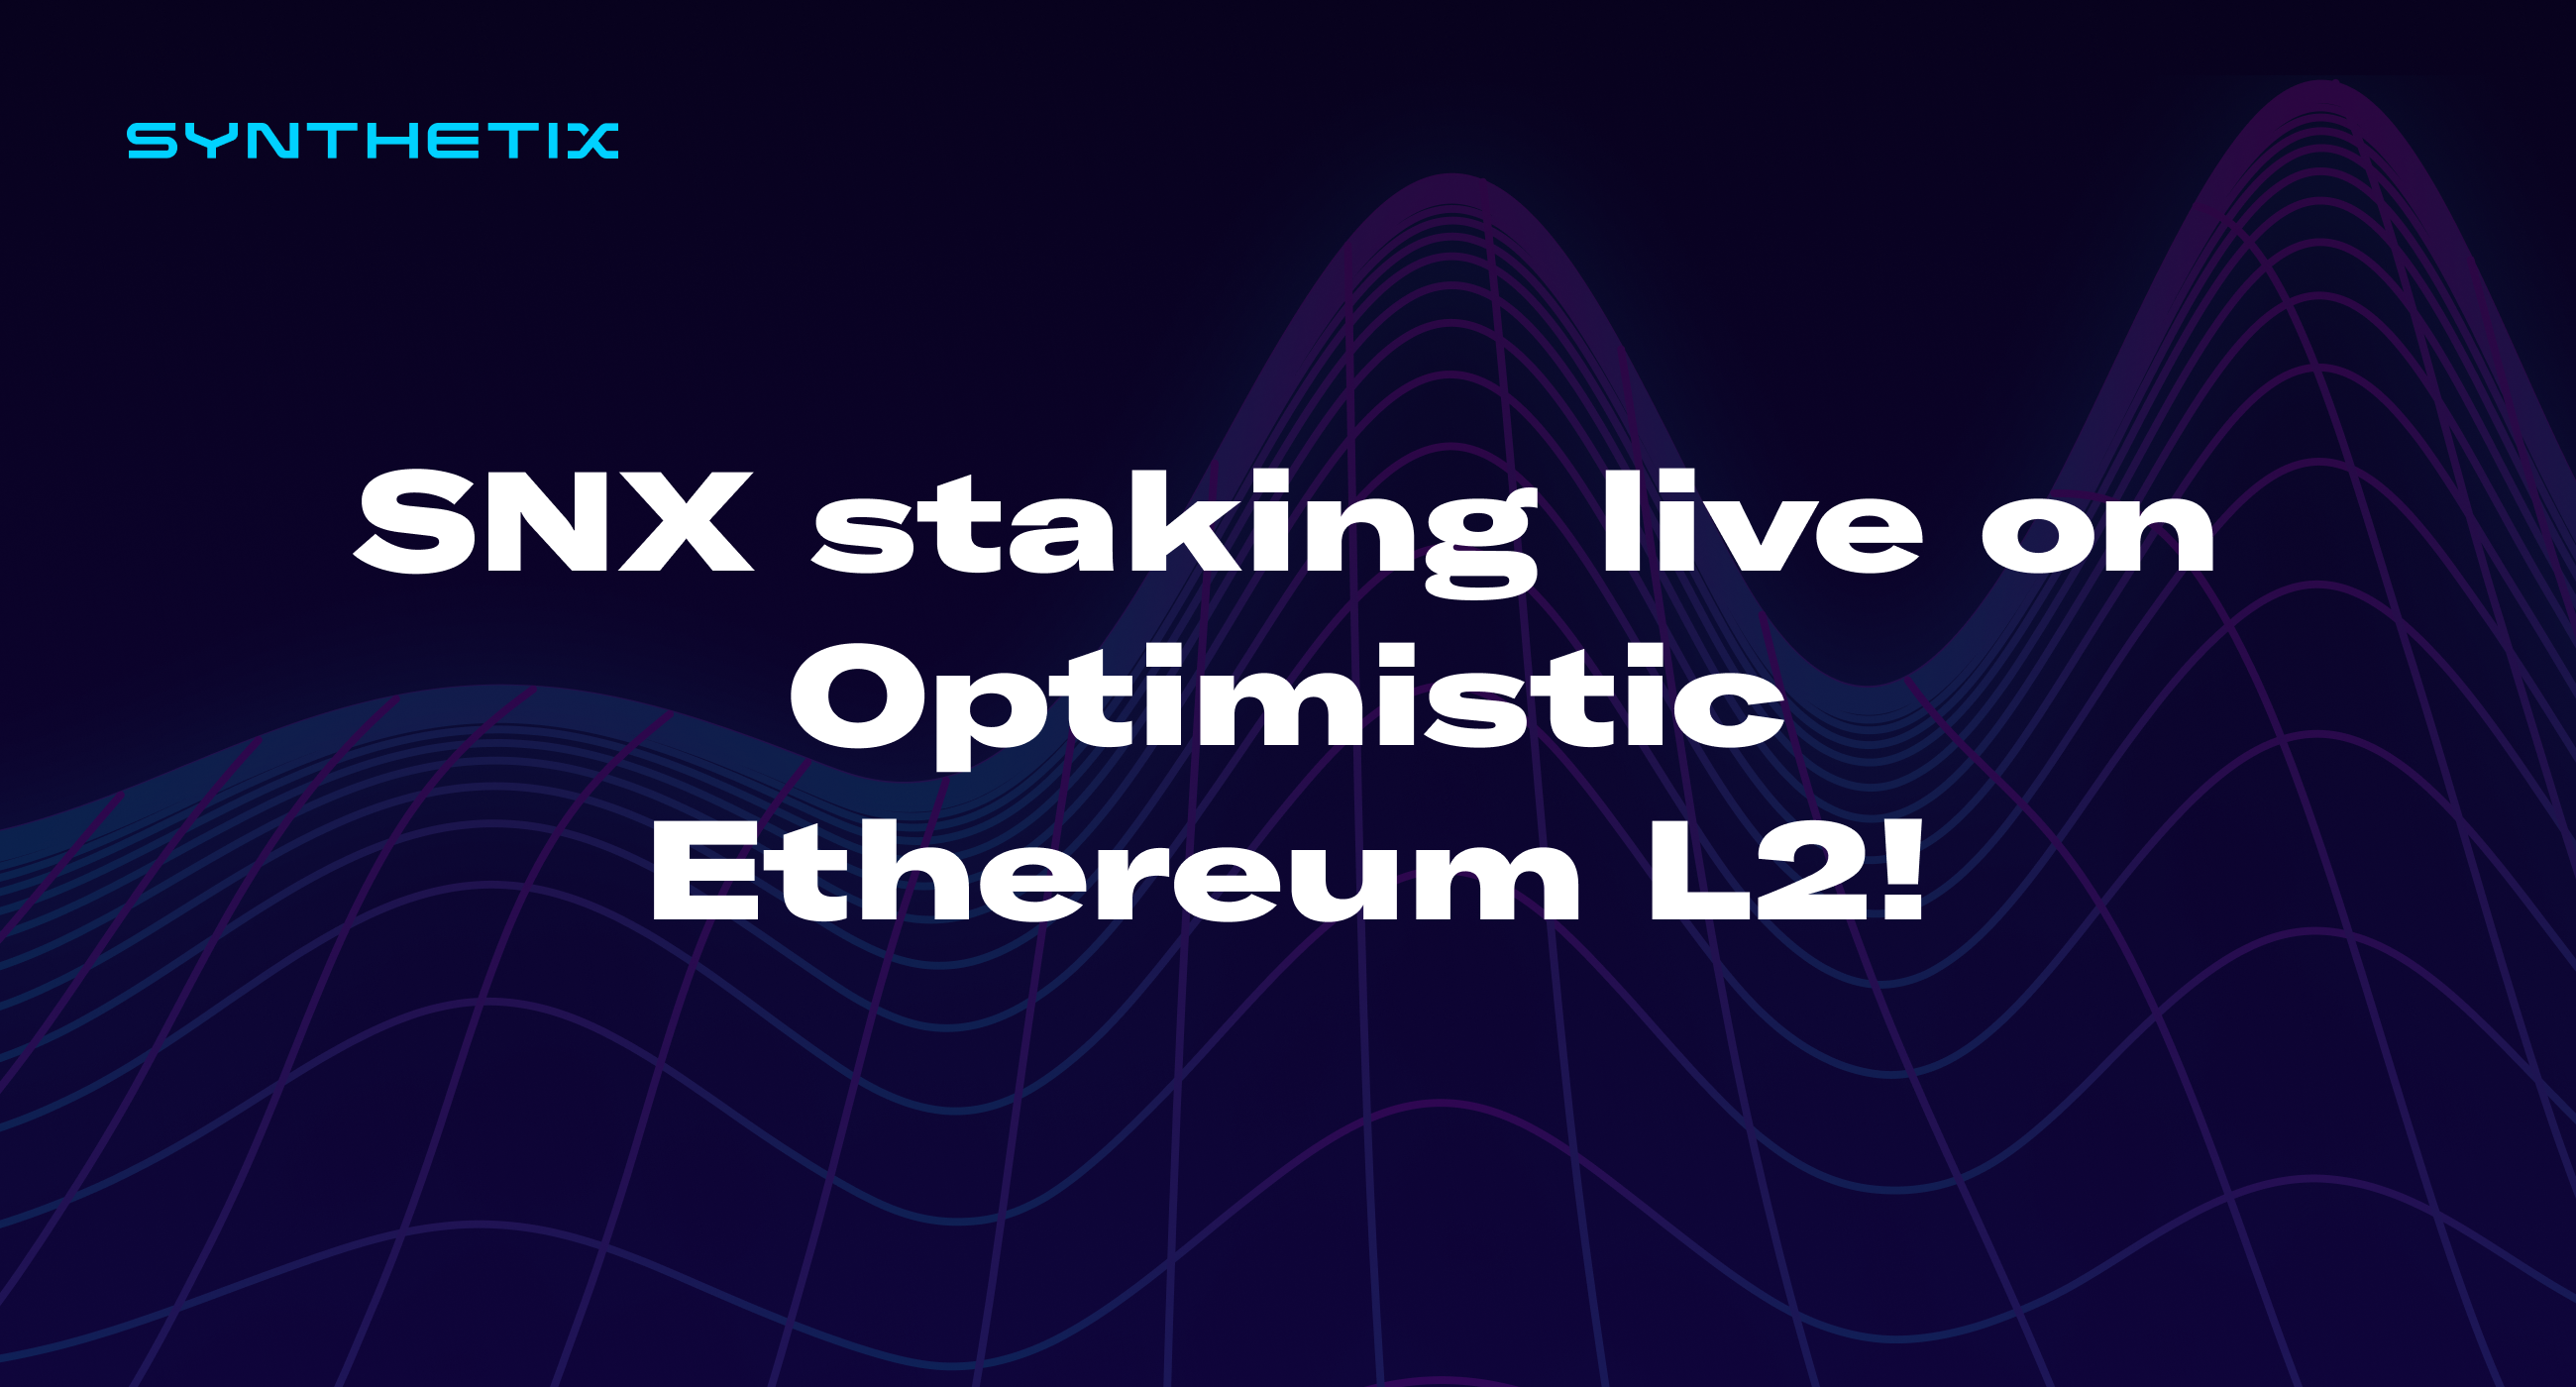 SNX staking live on Optimistic Ethereum L2!